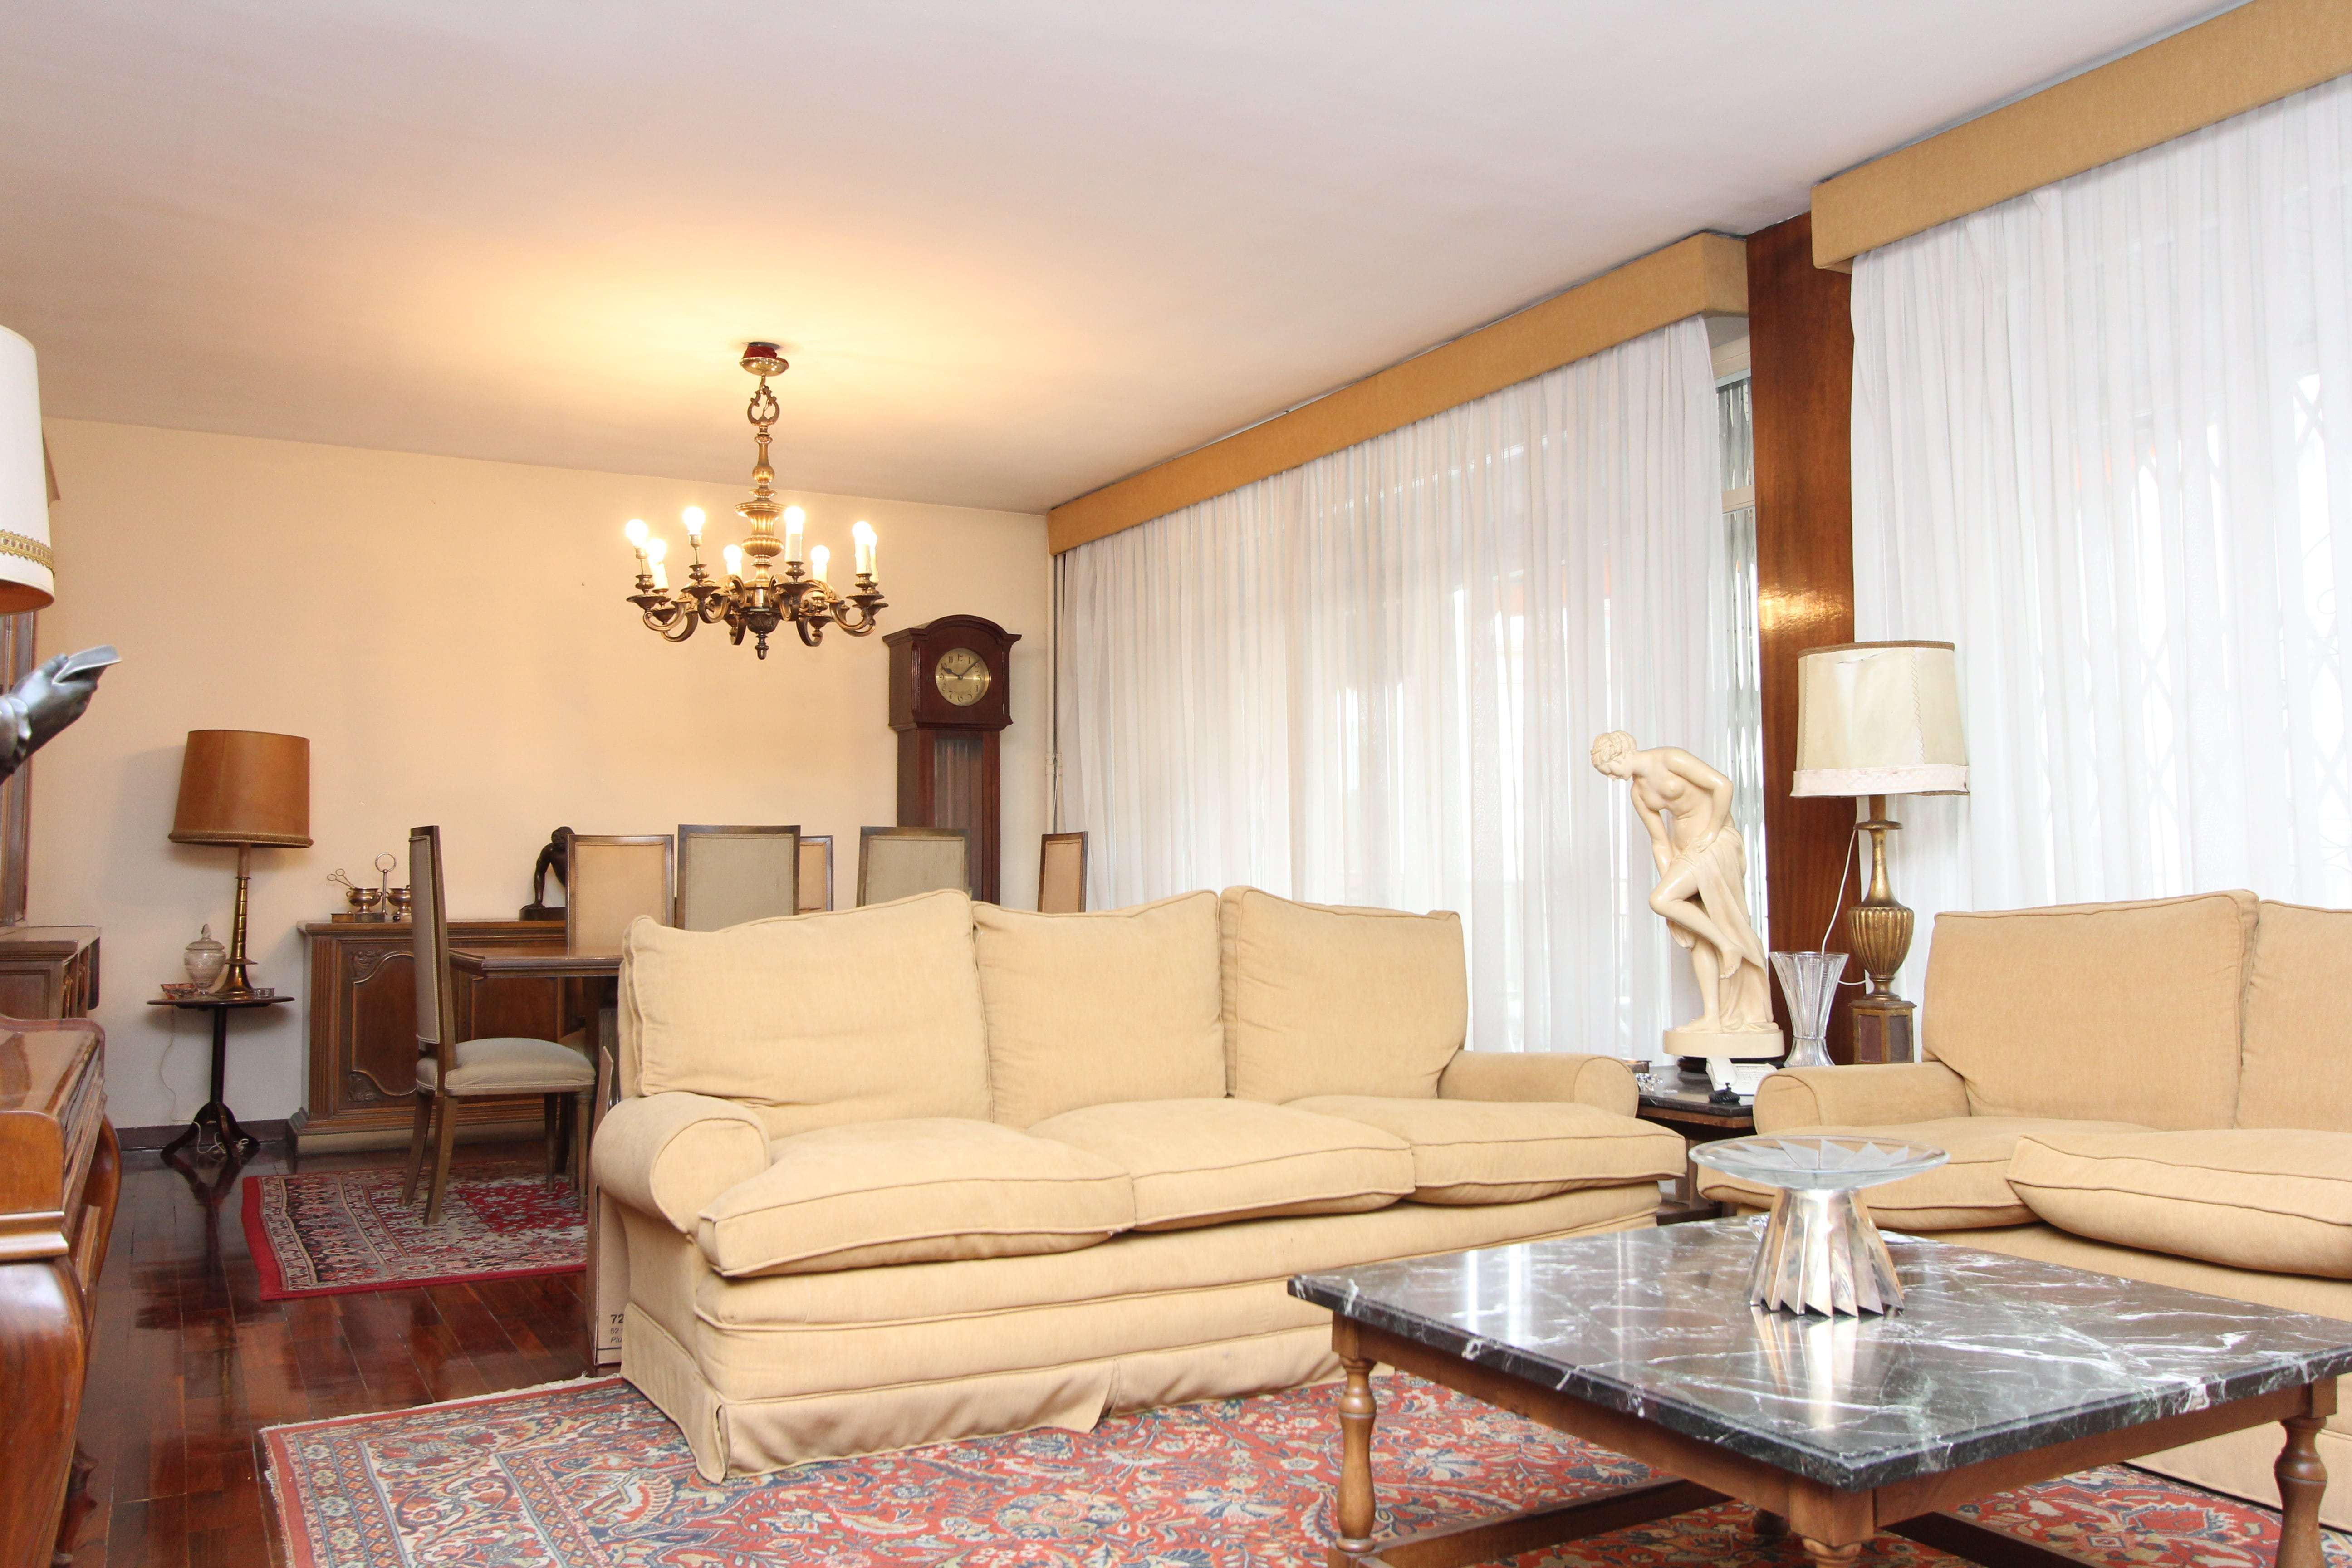 Charming apartment in Turo Park 4 bedrooms